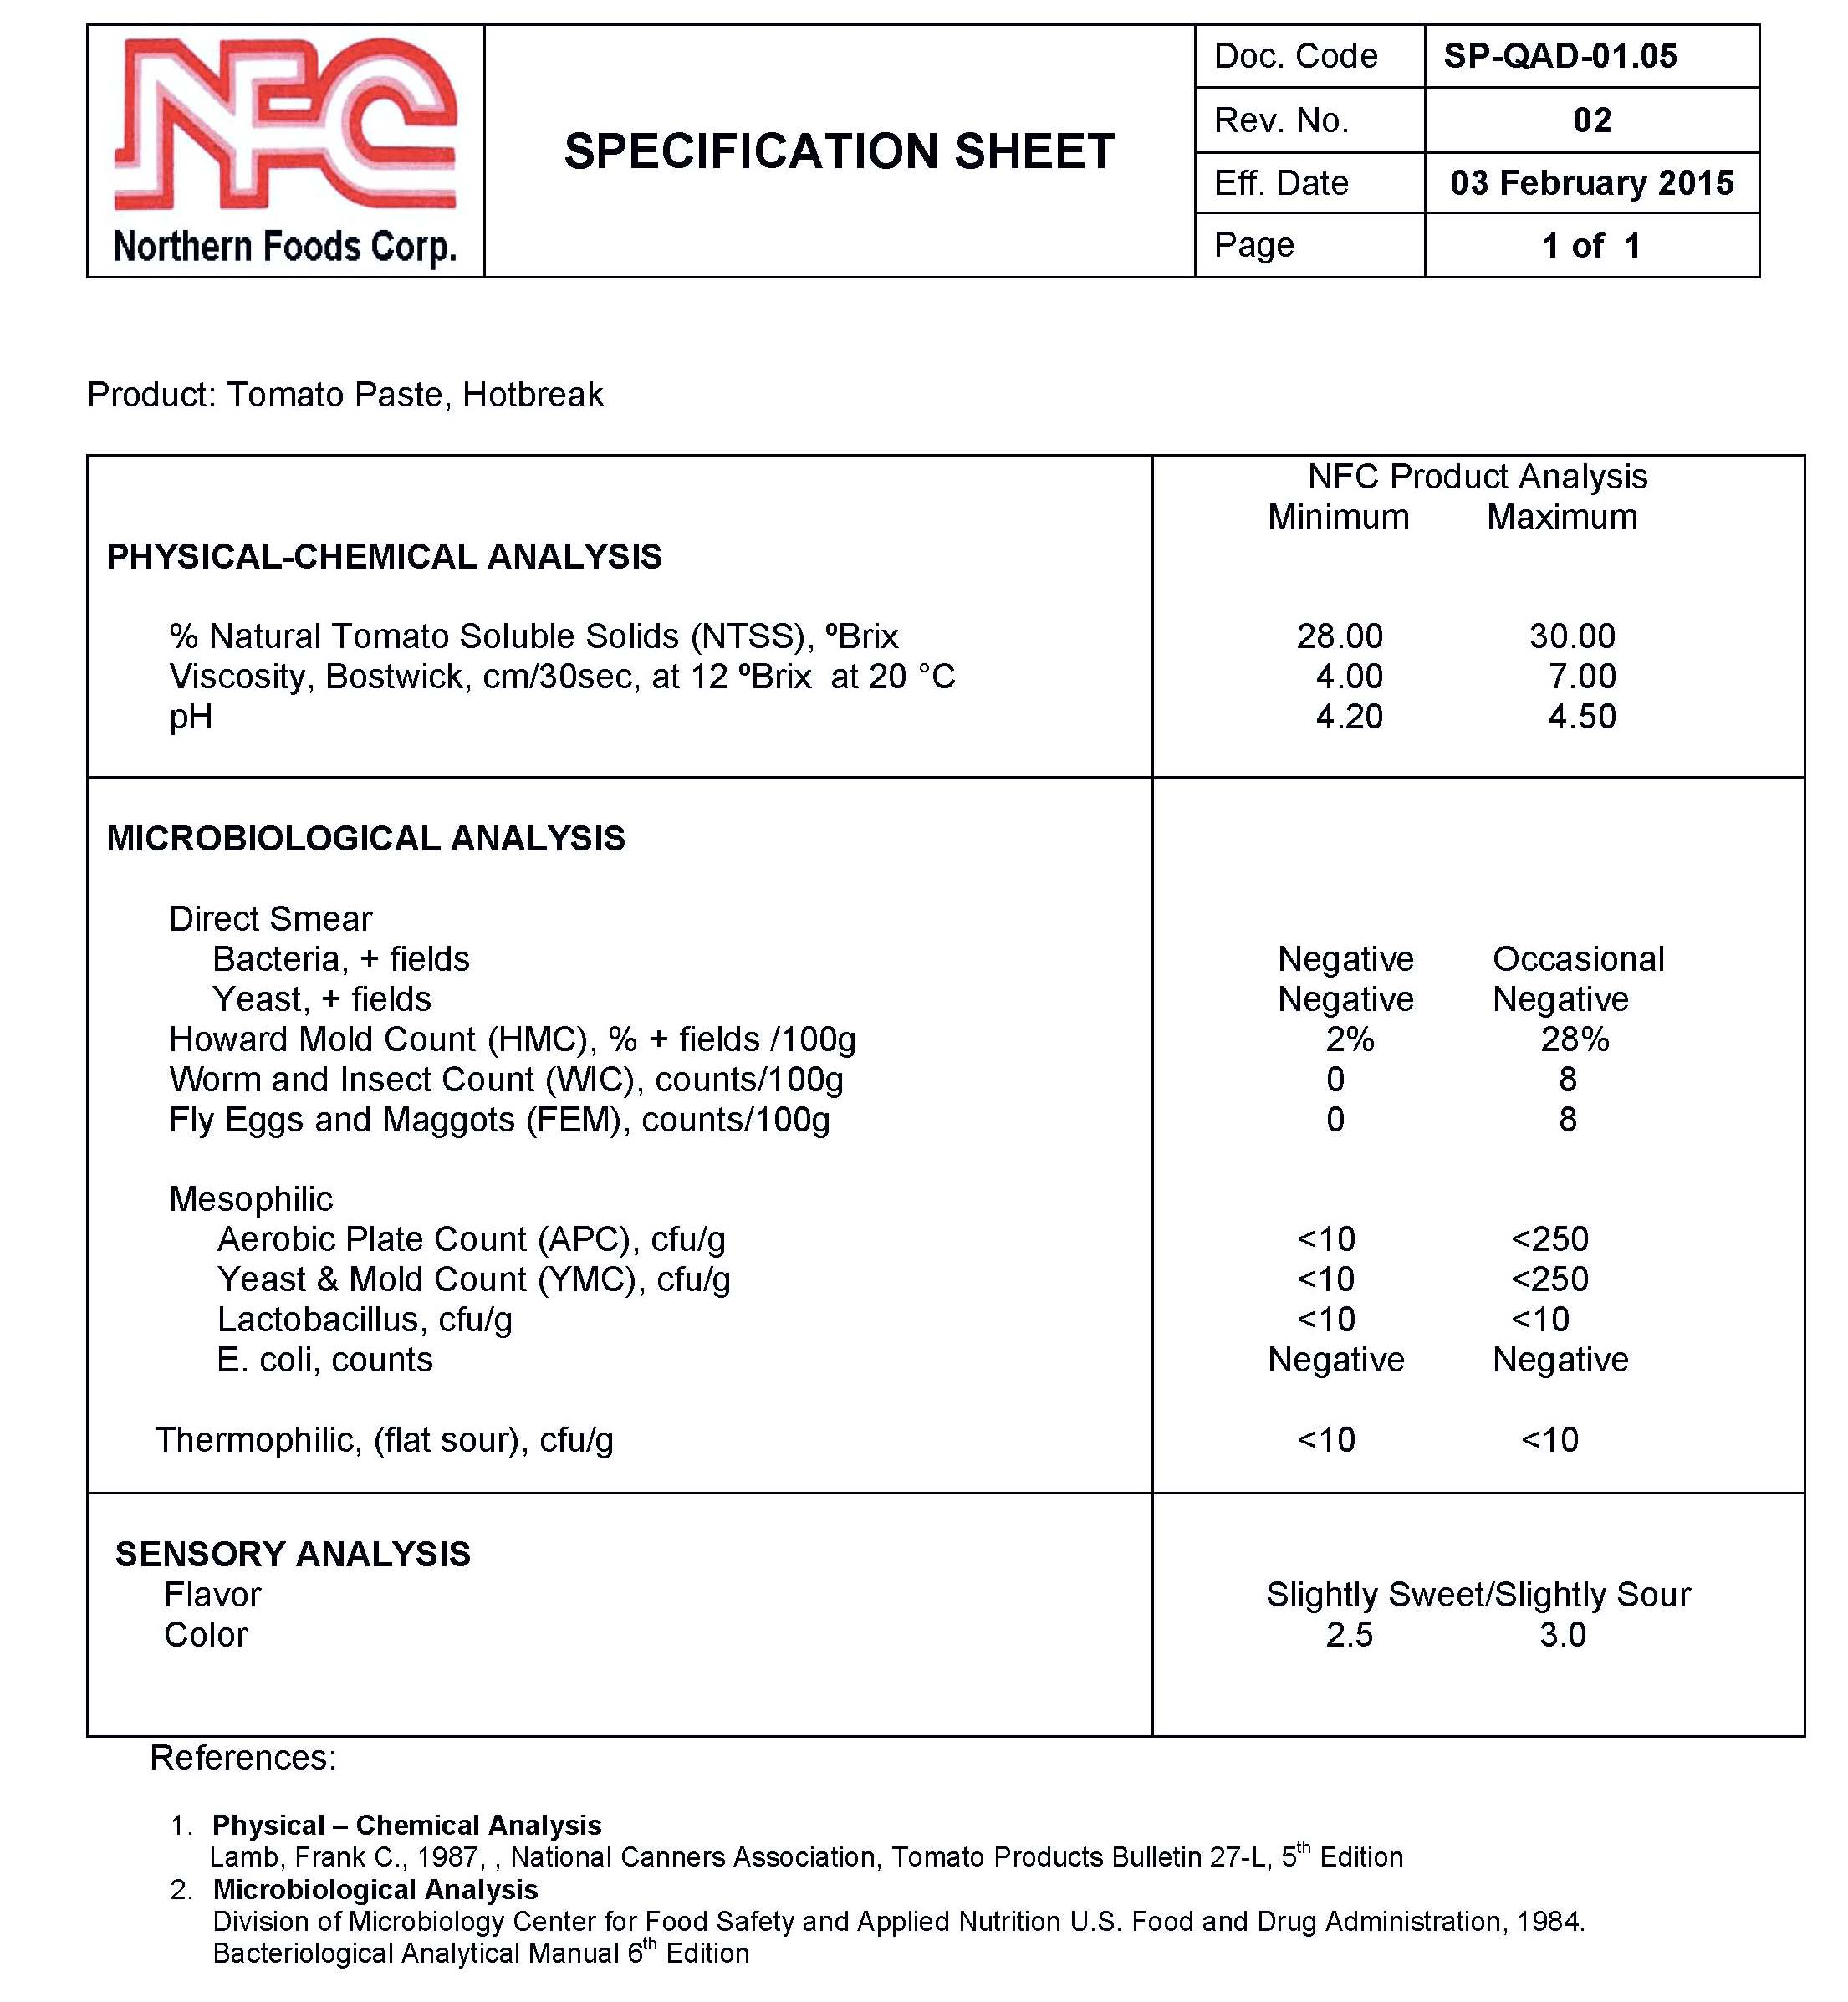 SP-QAD-01 05 Specification Sheet Rev02 03 Feb 2015